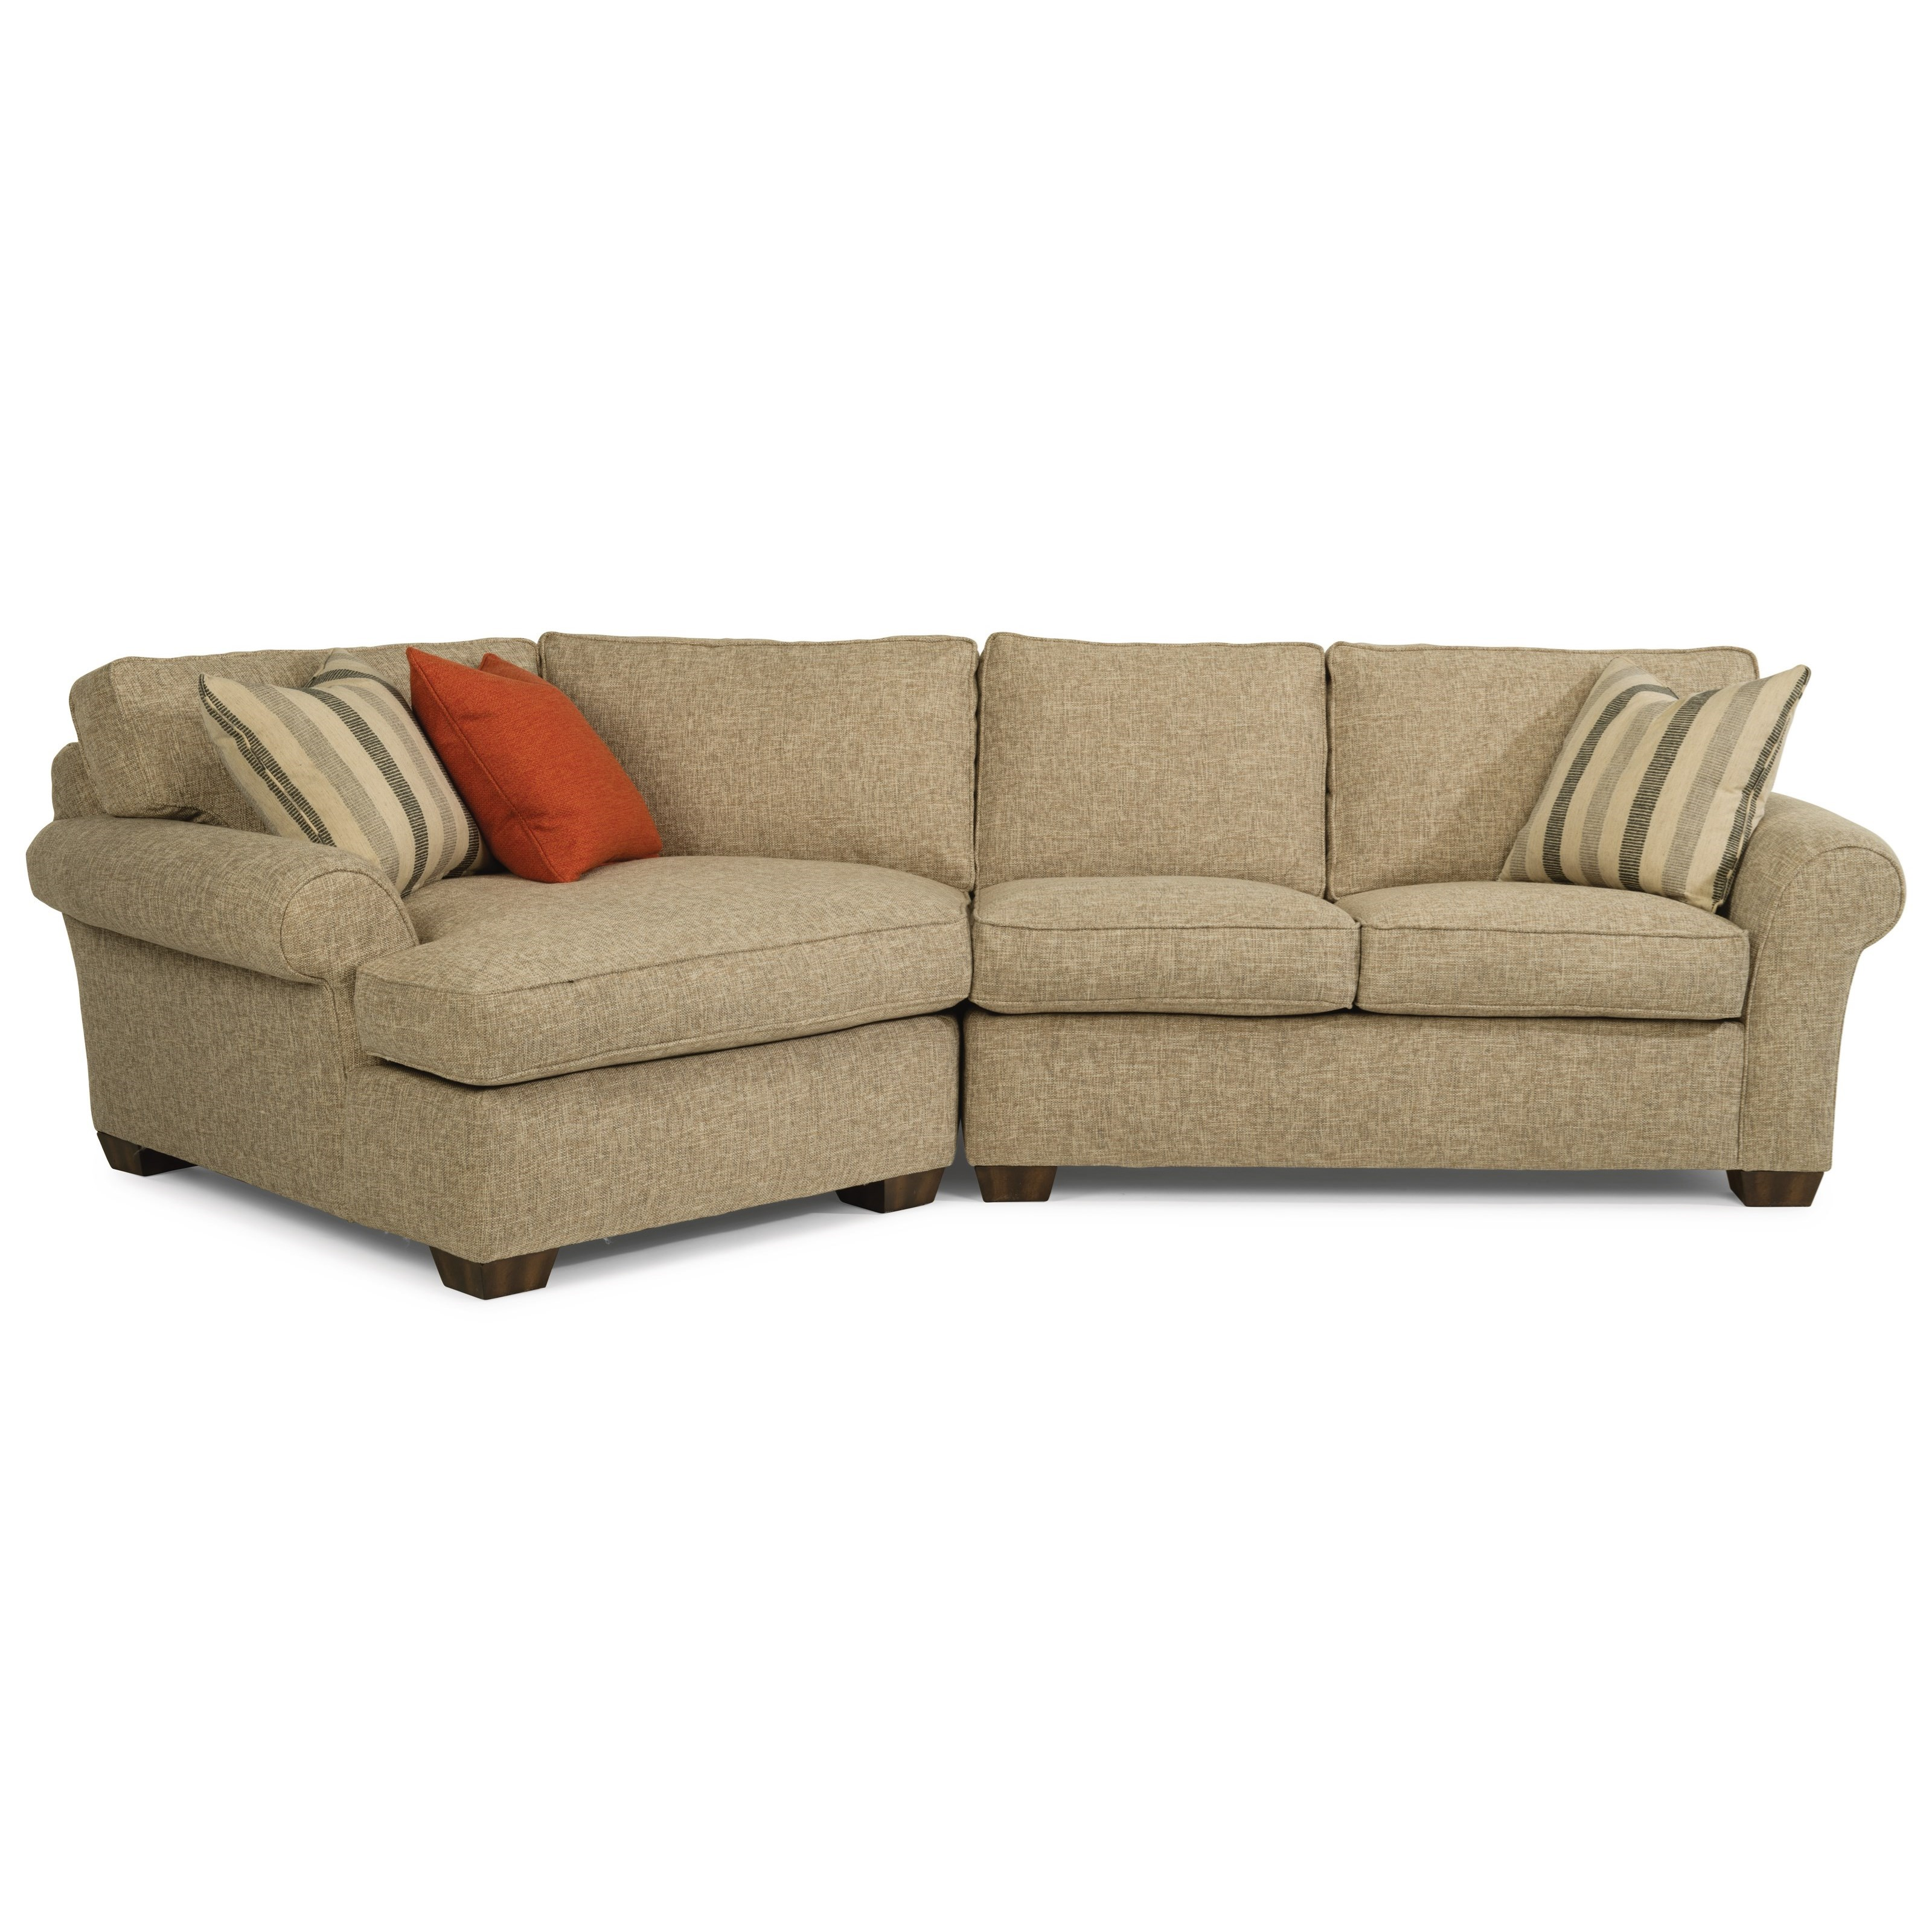 Flexsteel Vail 2 Piece Sectional With